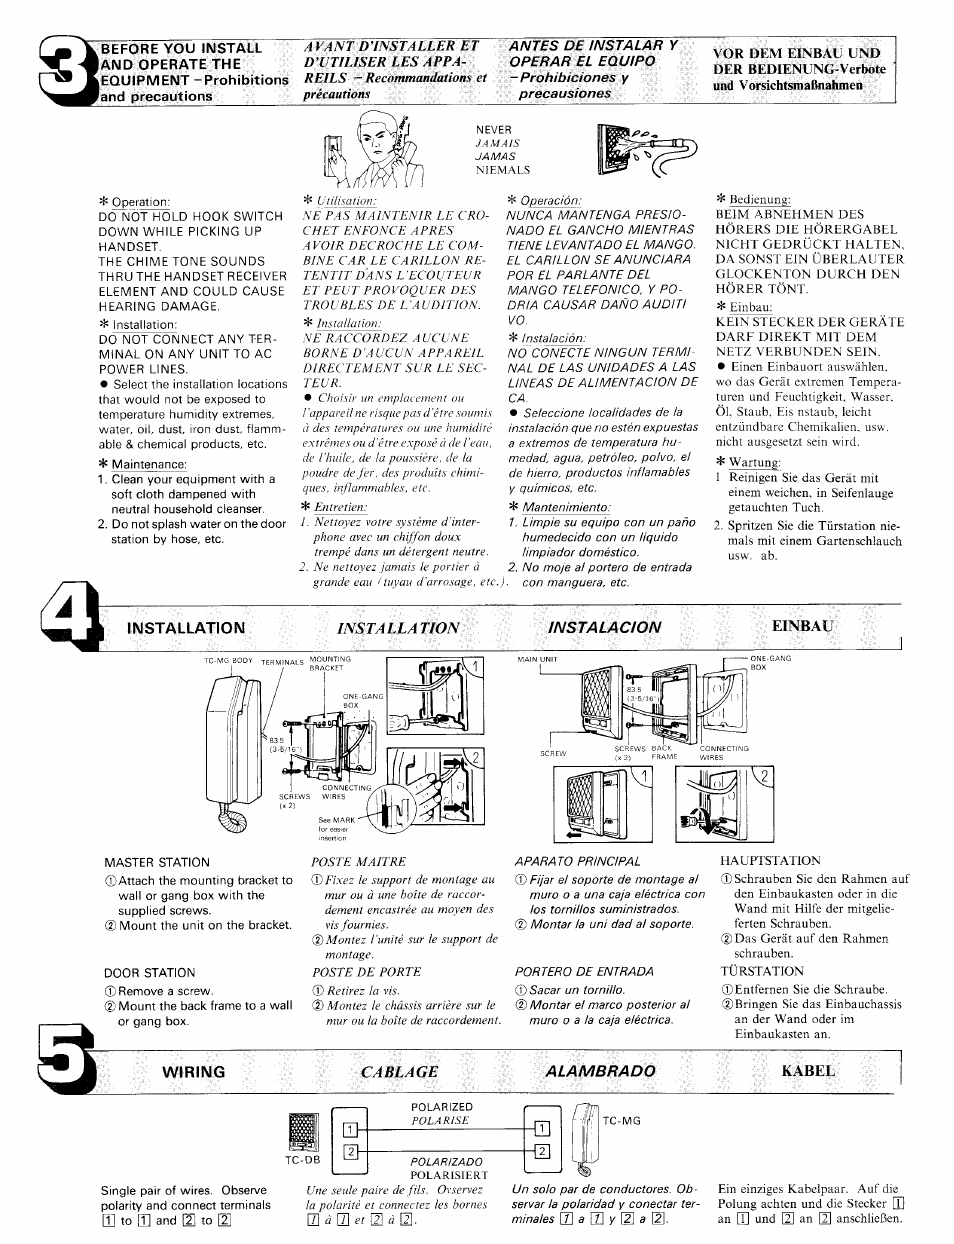 Installation Wiring Kabel Aiphone Tc Mc User Manual Page 2 4 How To Install A New Phone Line From The Box De Marc Isst4lla Tion Cablage Instalacion Einbau